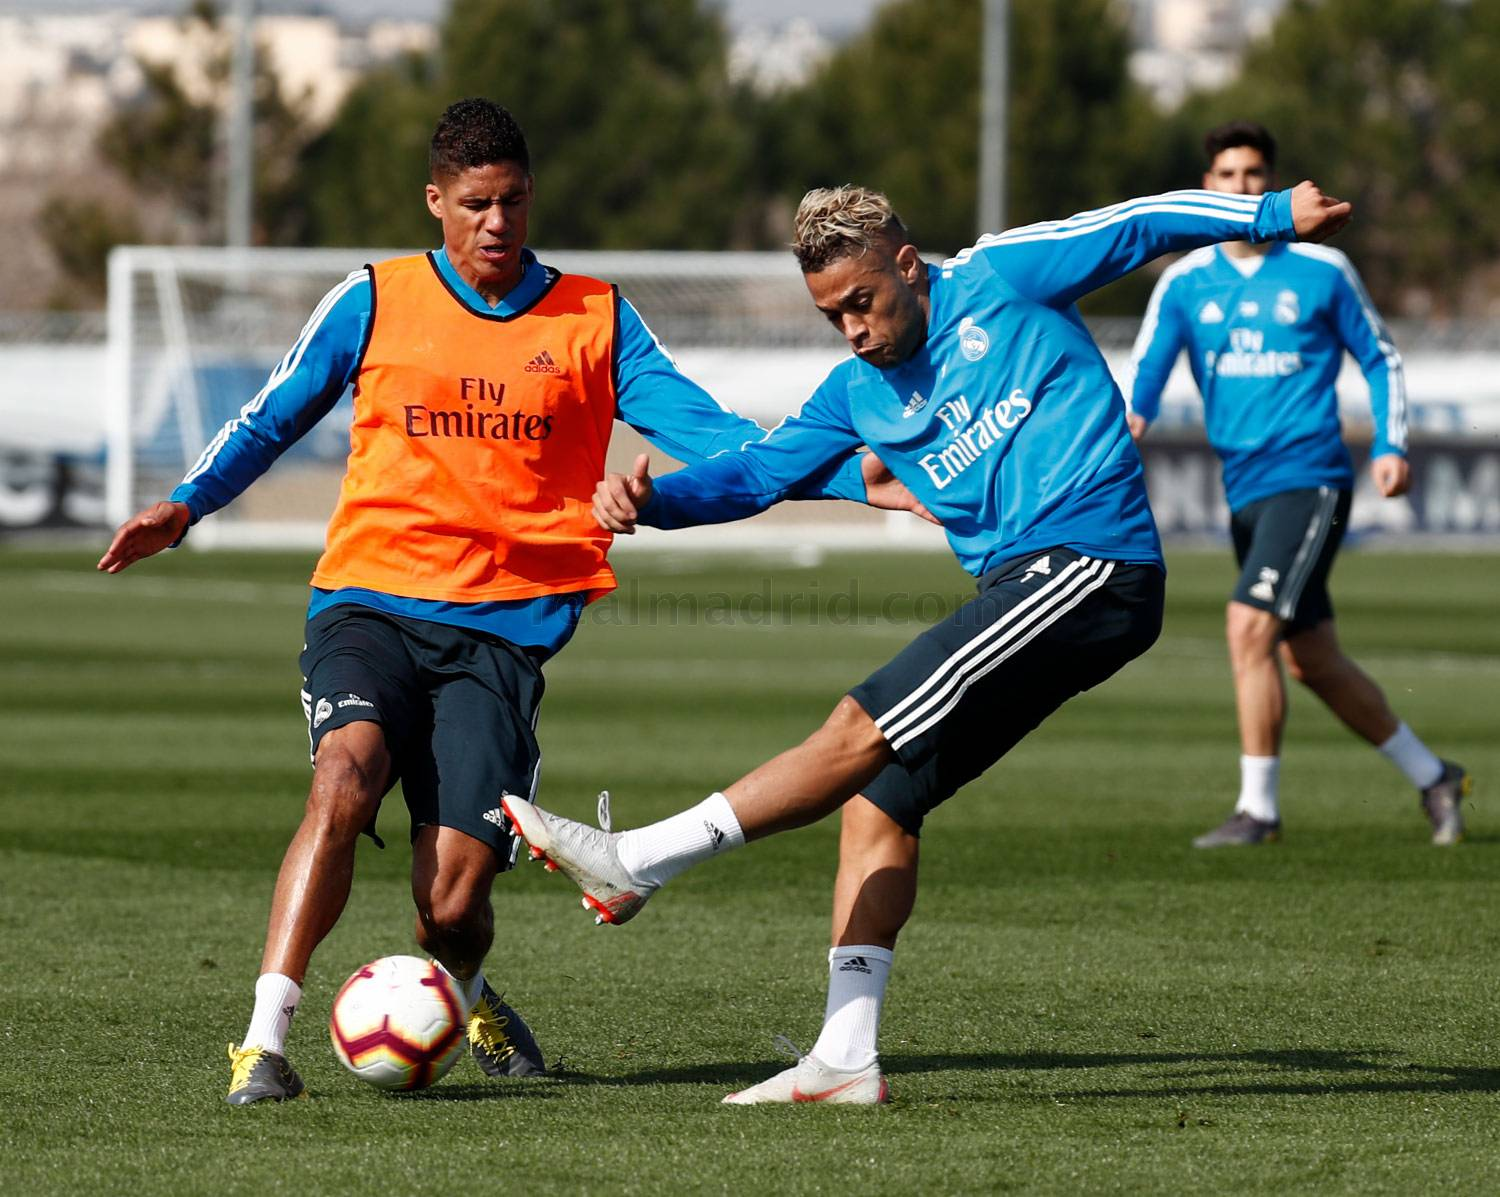 Real Madrid - Entrenamiento del Real Madrid - 20-02-2019